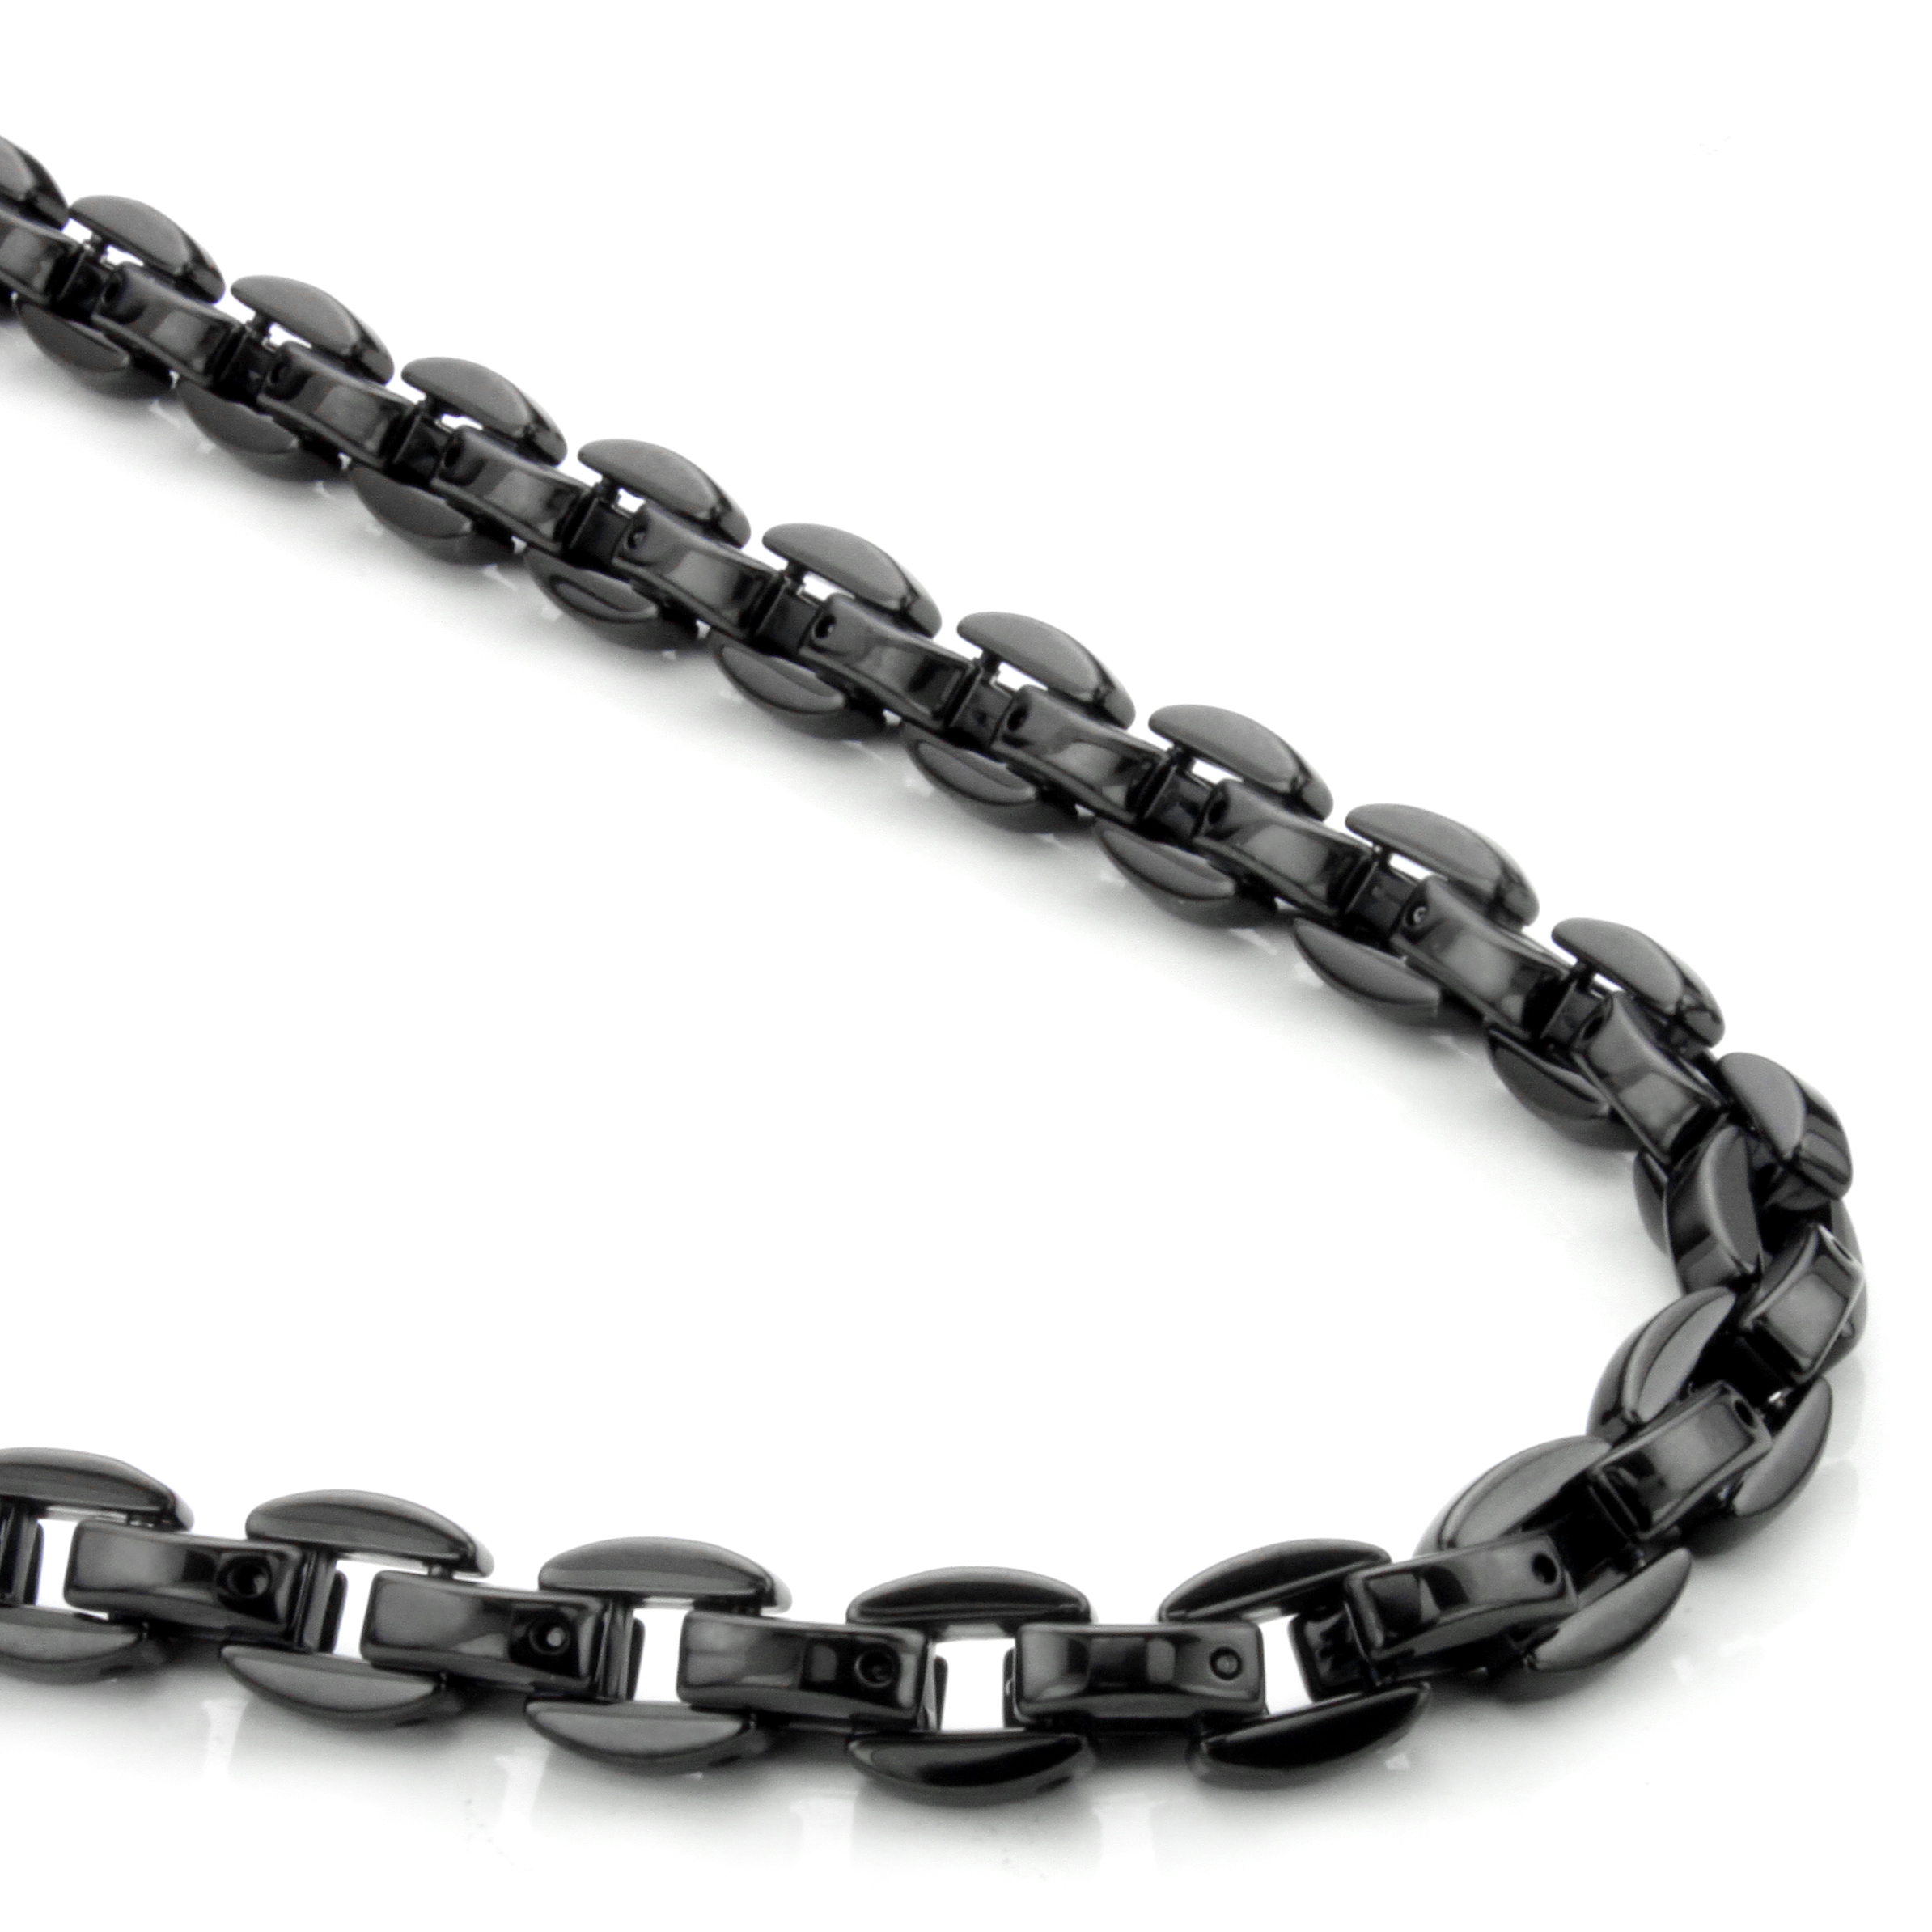 Black tungsten necklace necklace wallpaper gallerychitrak tungsten diamond dog with stainless steel curb necklace 24 impressive black tungsten carbide mens wheat link necklace chain p rope chain jewelry neckalces aloadofball Image collections